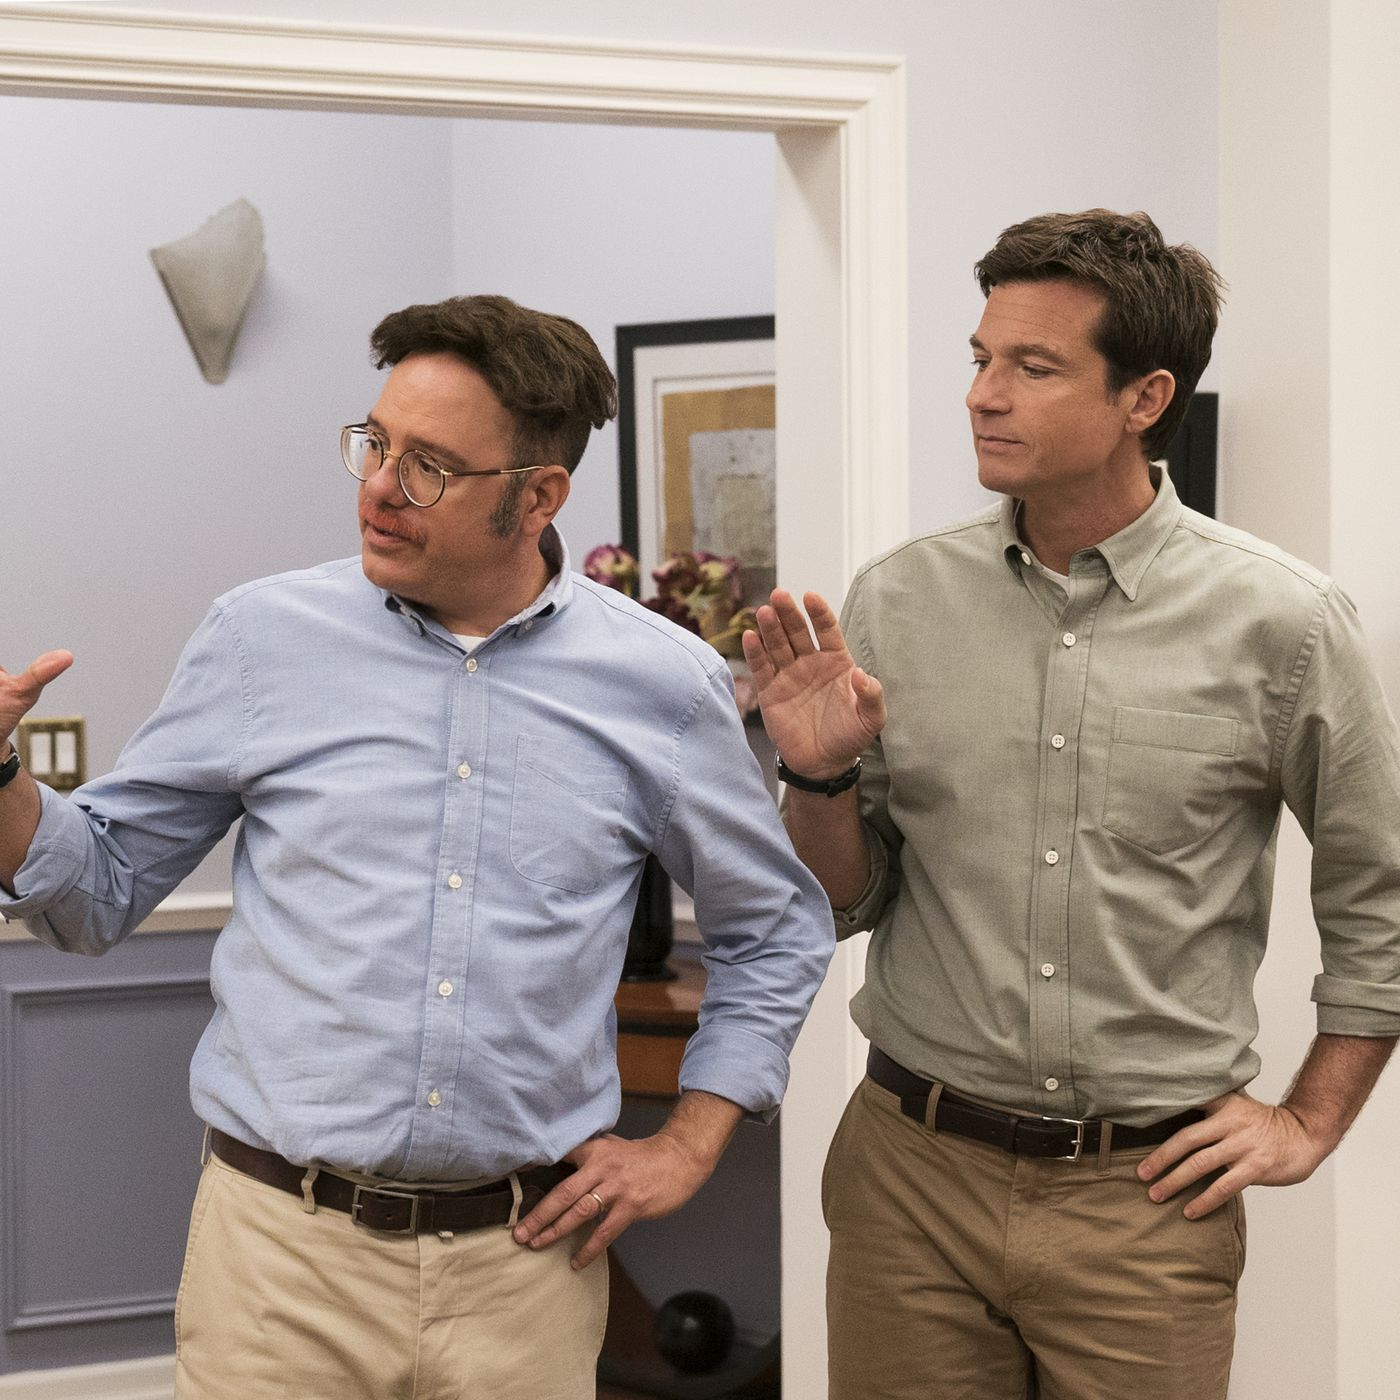 Arrested Development season 5 review: the good, the bad, and